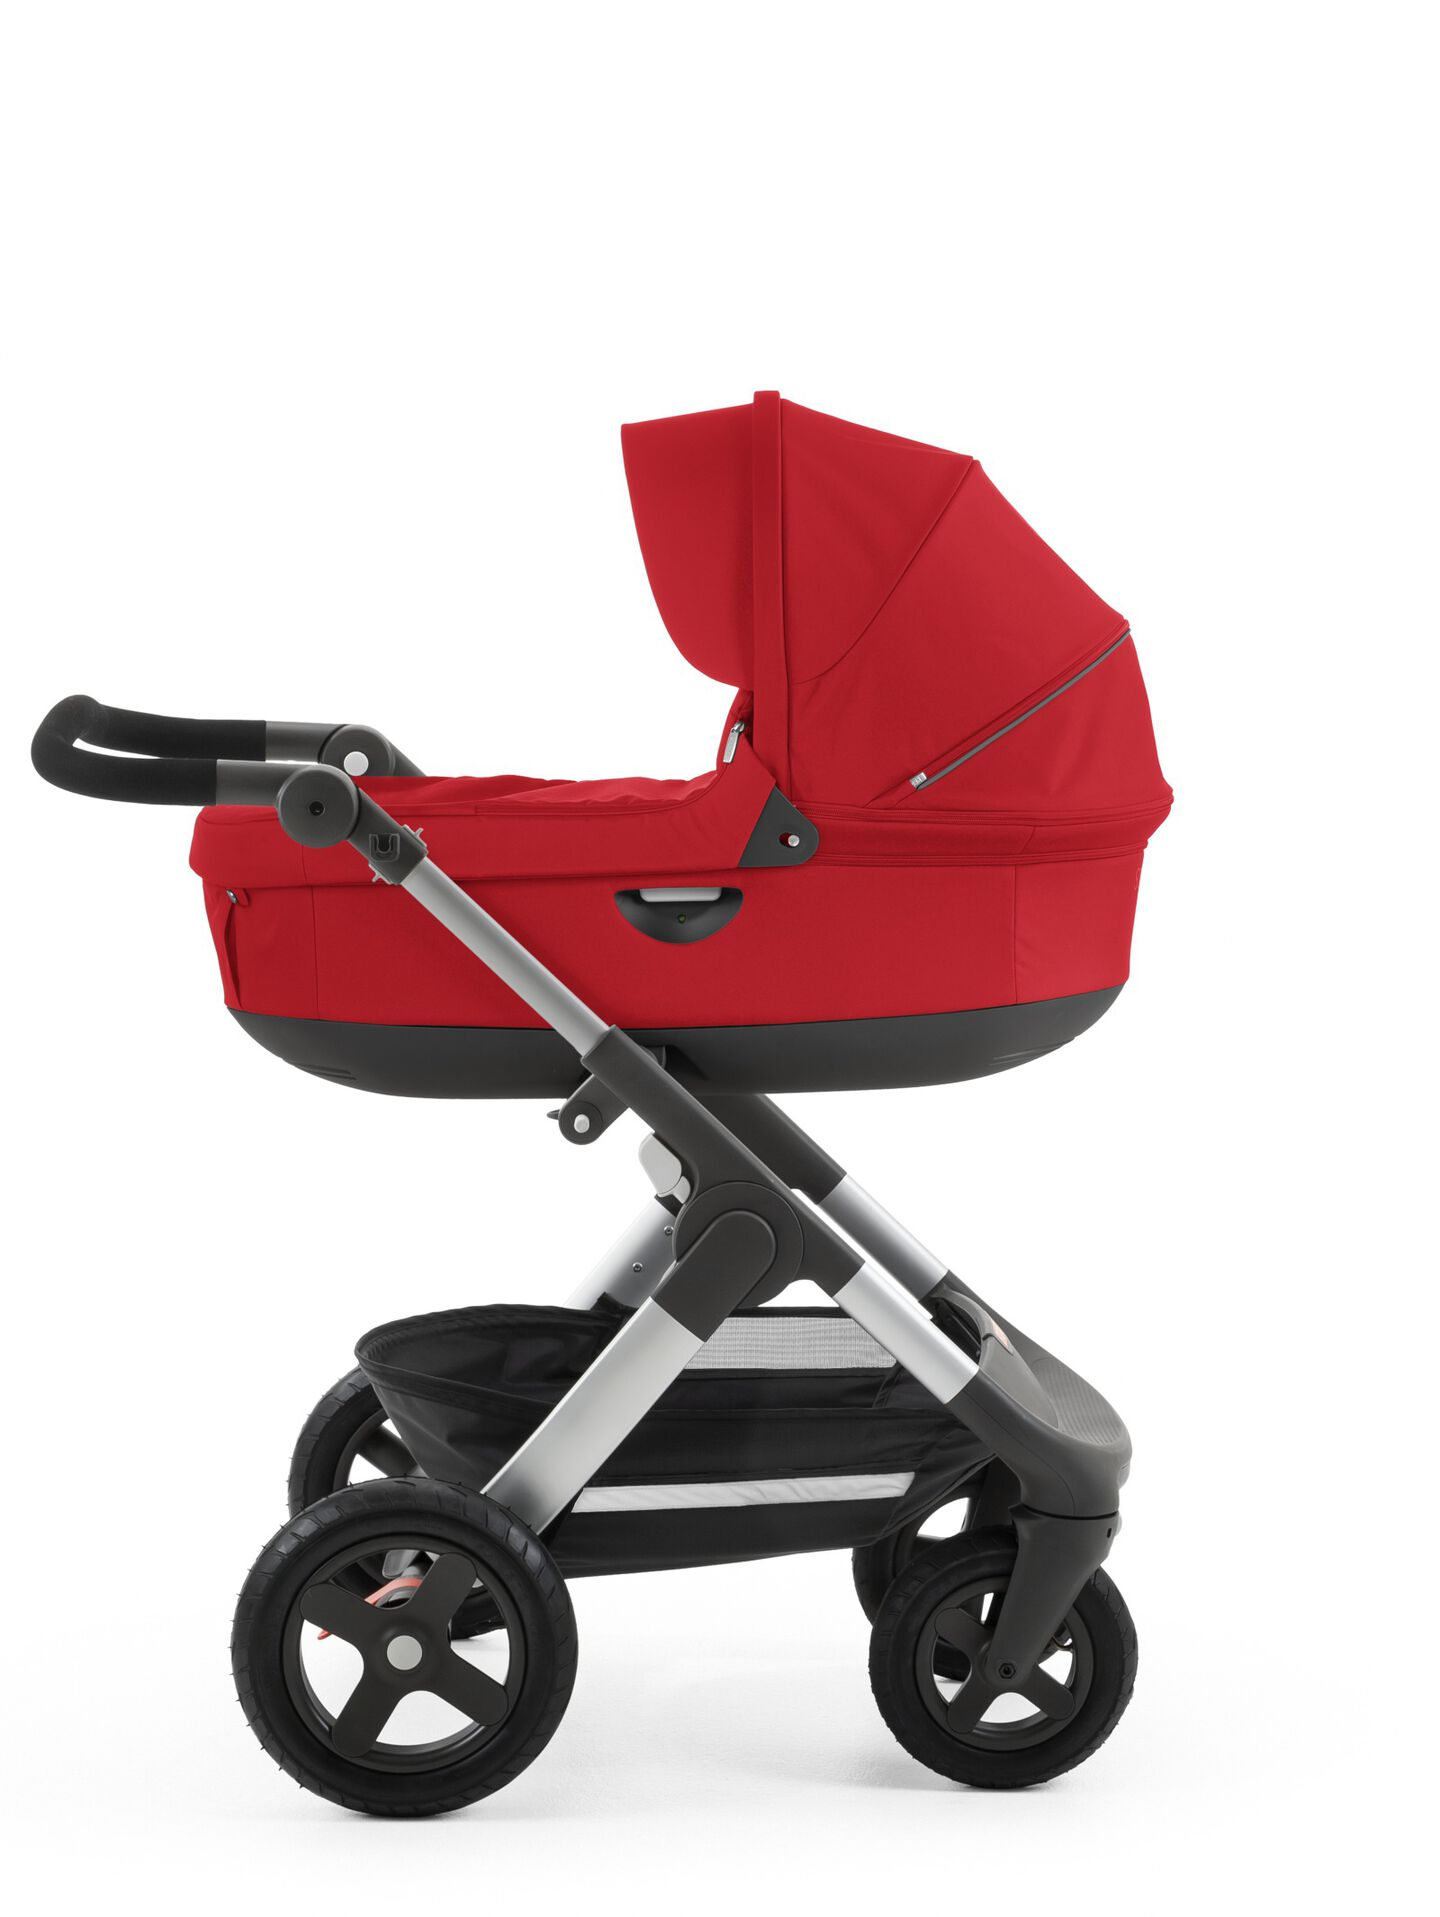 Stokke® Trailz™ Red, Red, mainview